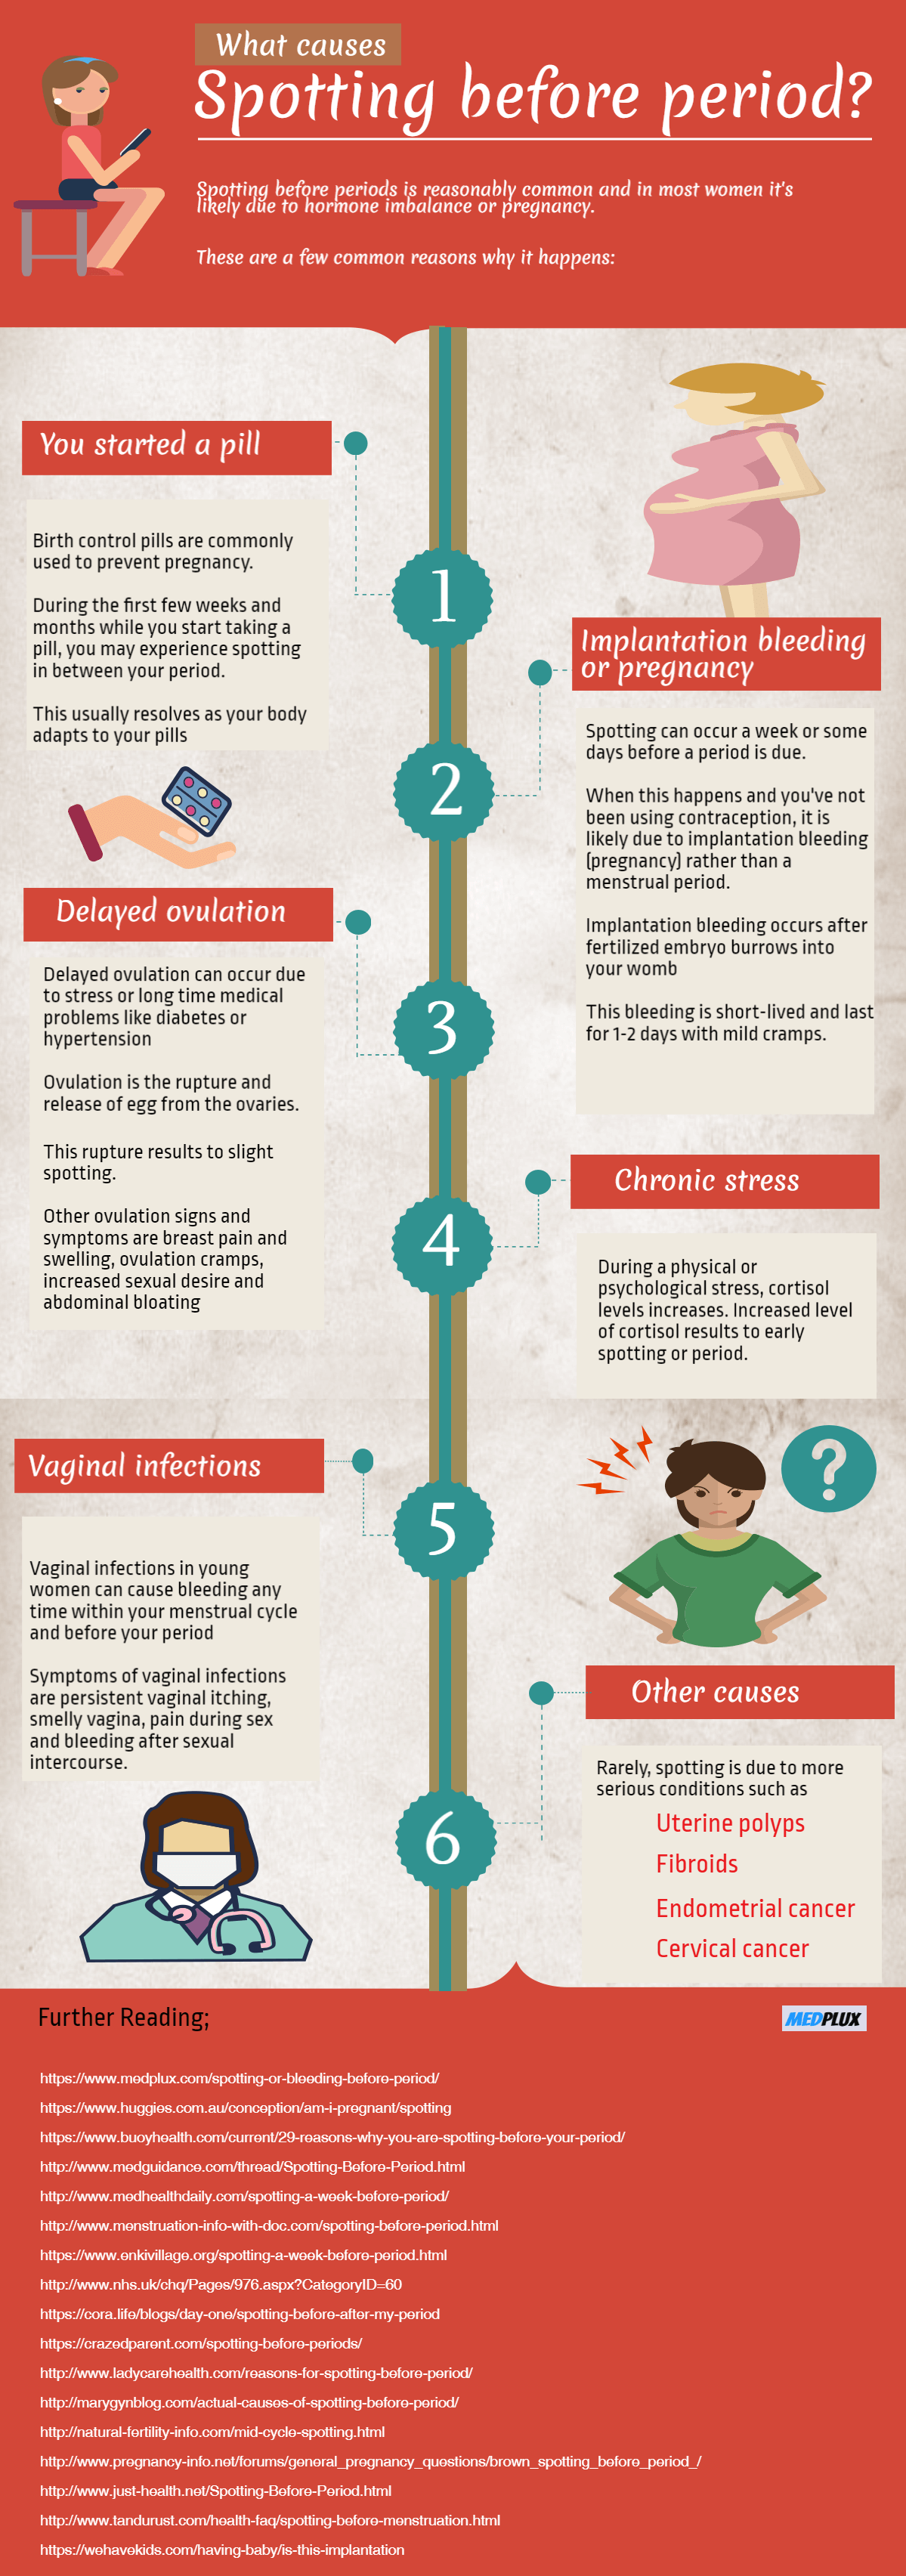 The Reason Behind The Spotting Prior To Your Period - Infographic